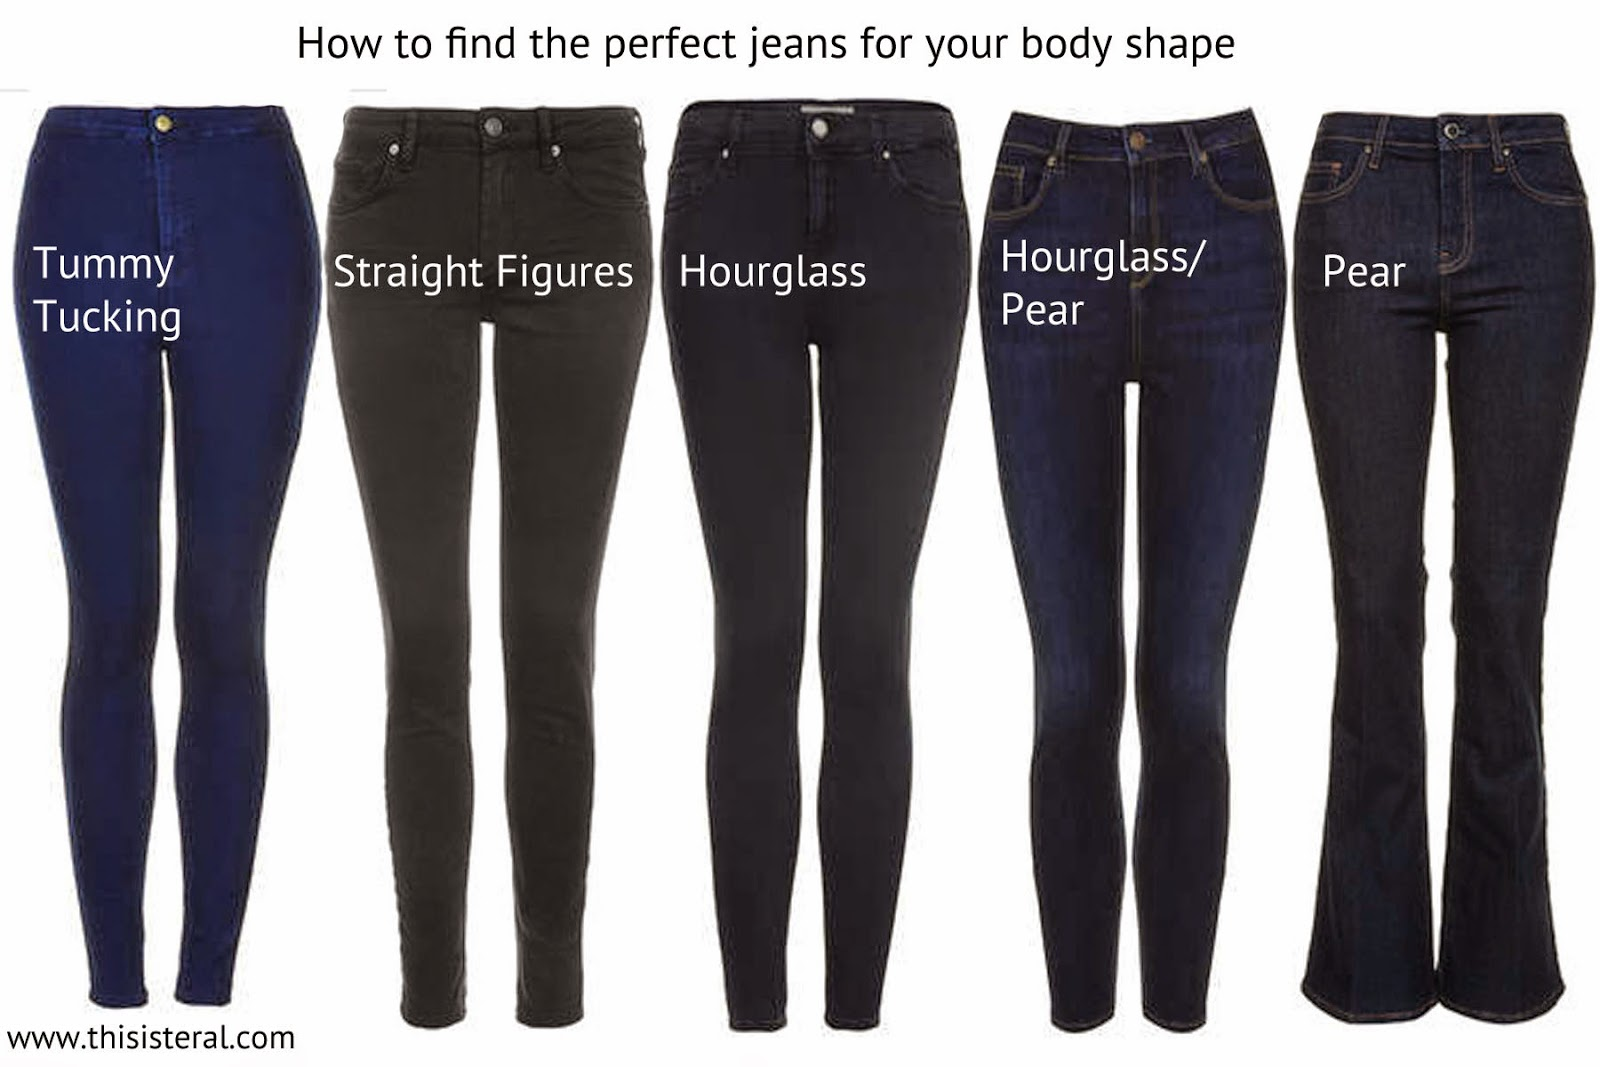 How to Choose Perfect Jeans Size